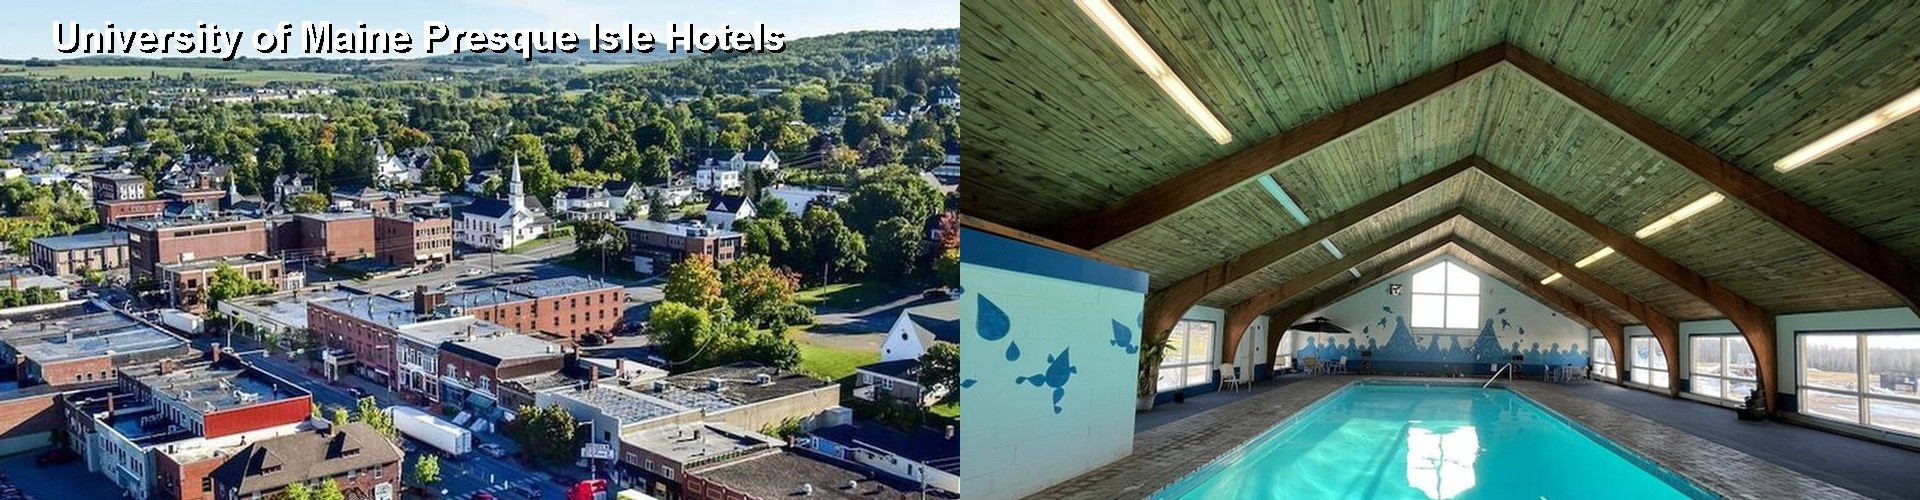 3 Best Hotels near University of Maine Presque Isle